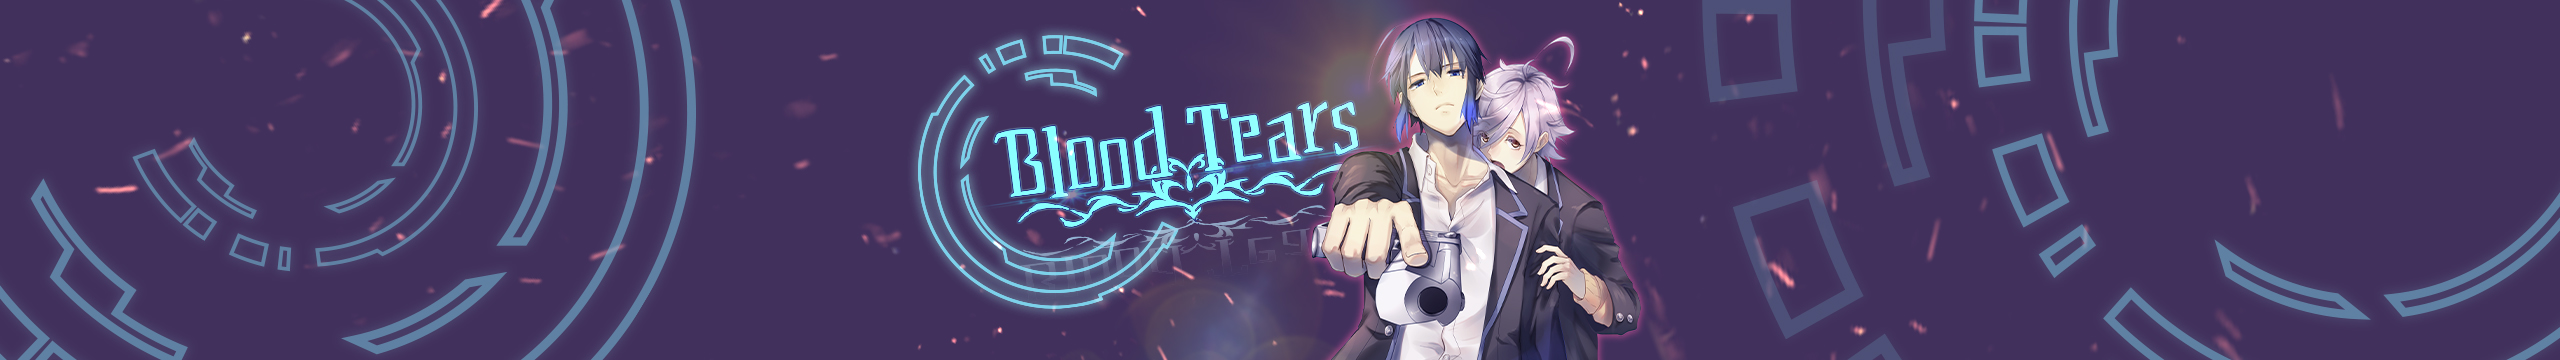 background cover